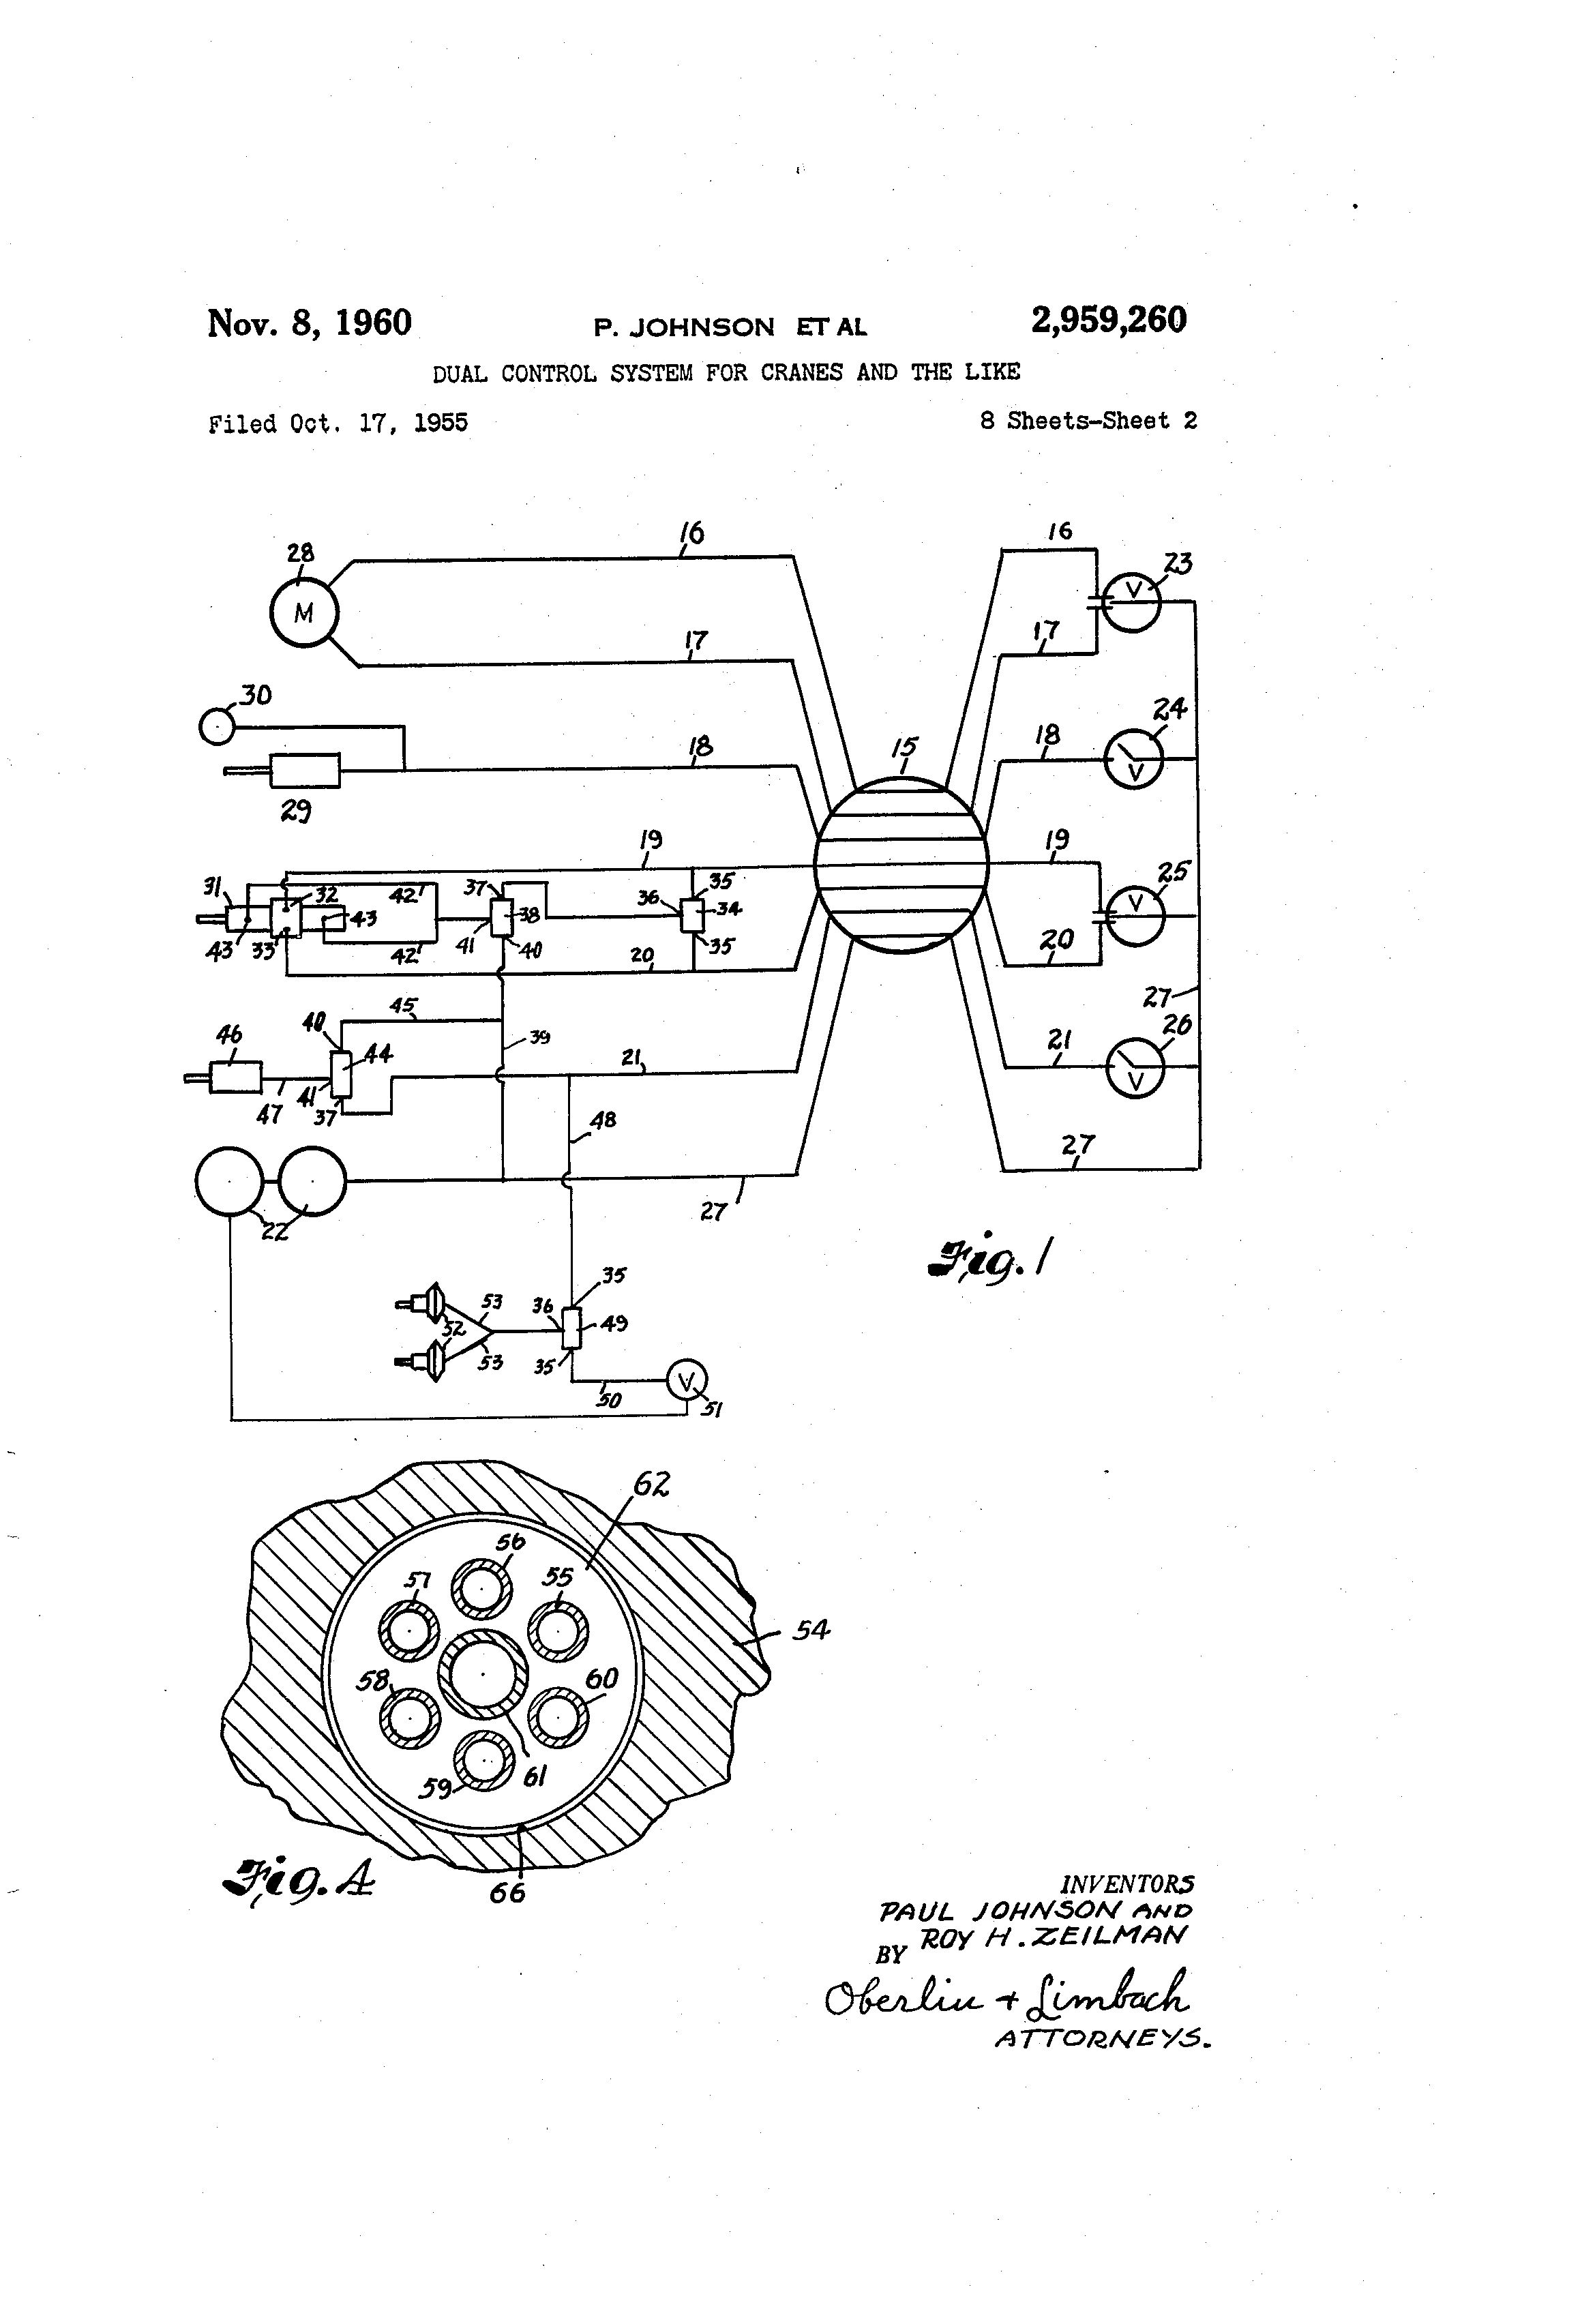 3 sd rotary fan switch wiring diagram html with Zing Ear Ze 208s Wiring Diagram on Zing Ear Ze 208s Wiring Diagram as well Notations In Er Diagram besides Pbs 3 Wiring Diagram together with Sd Nsor Wiring Diagram besides Legrand Rotary Dimmer Wiring Diagram.